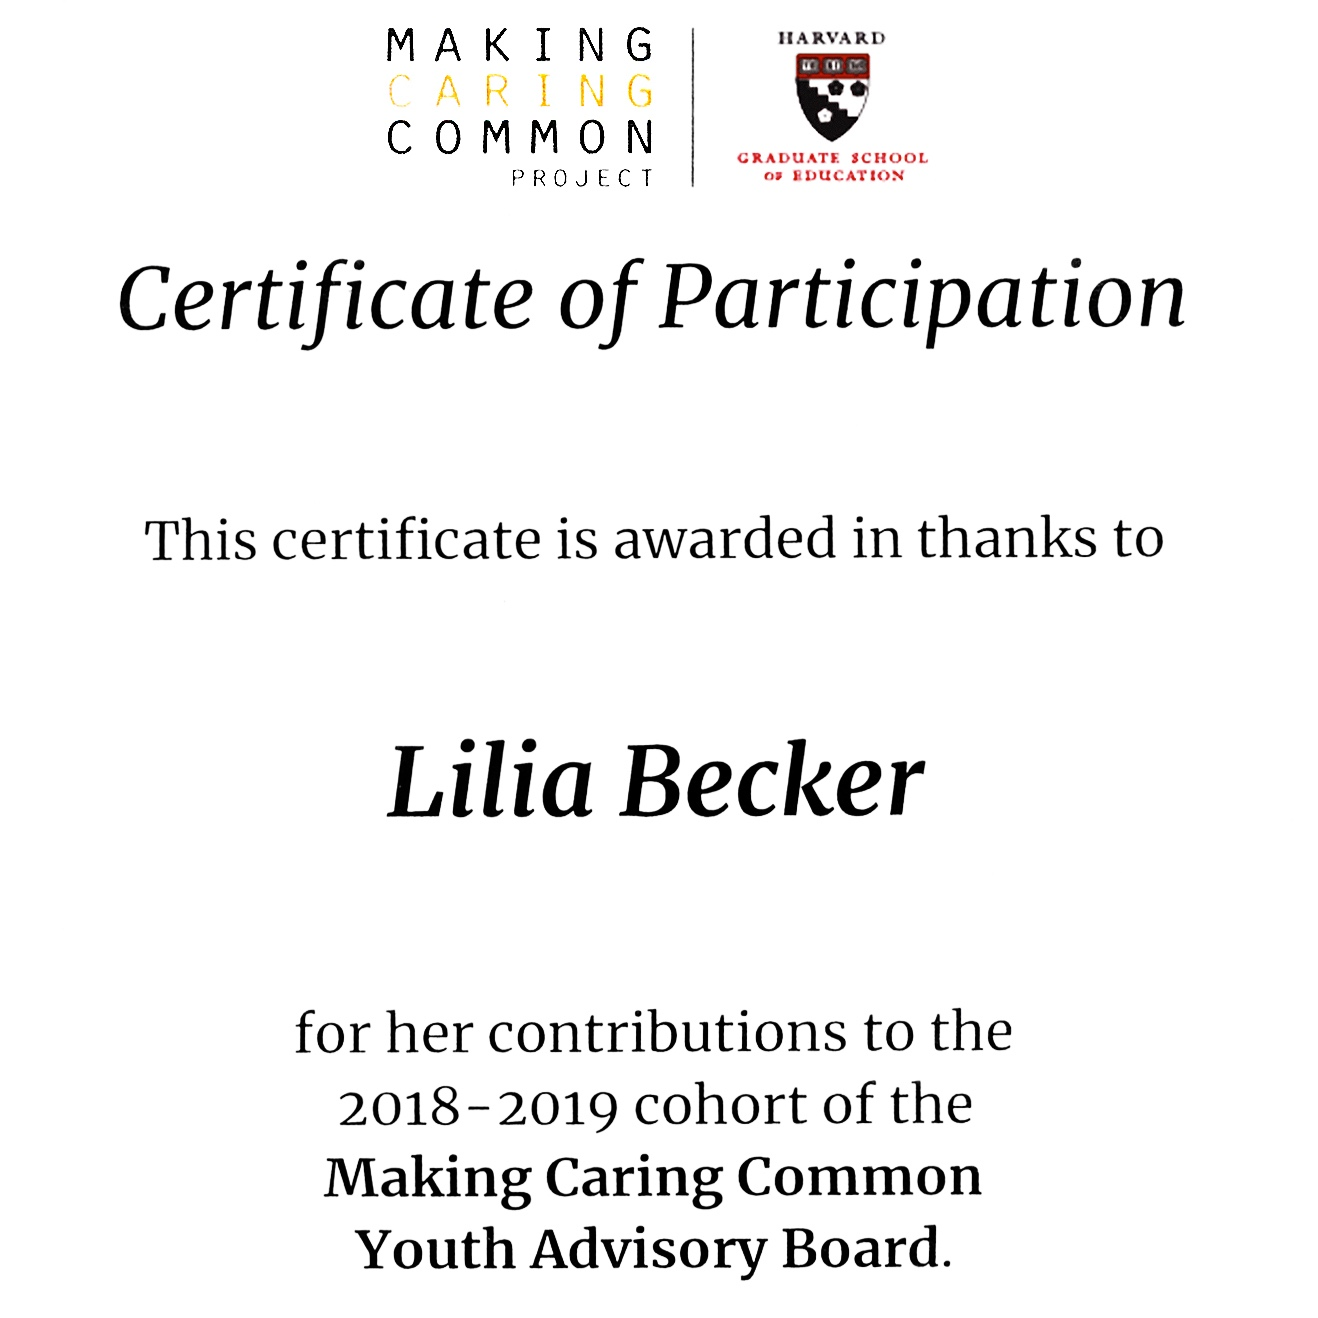 caring common certificate.jpg